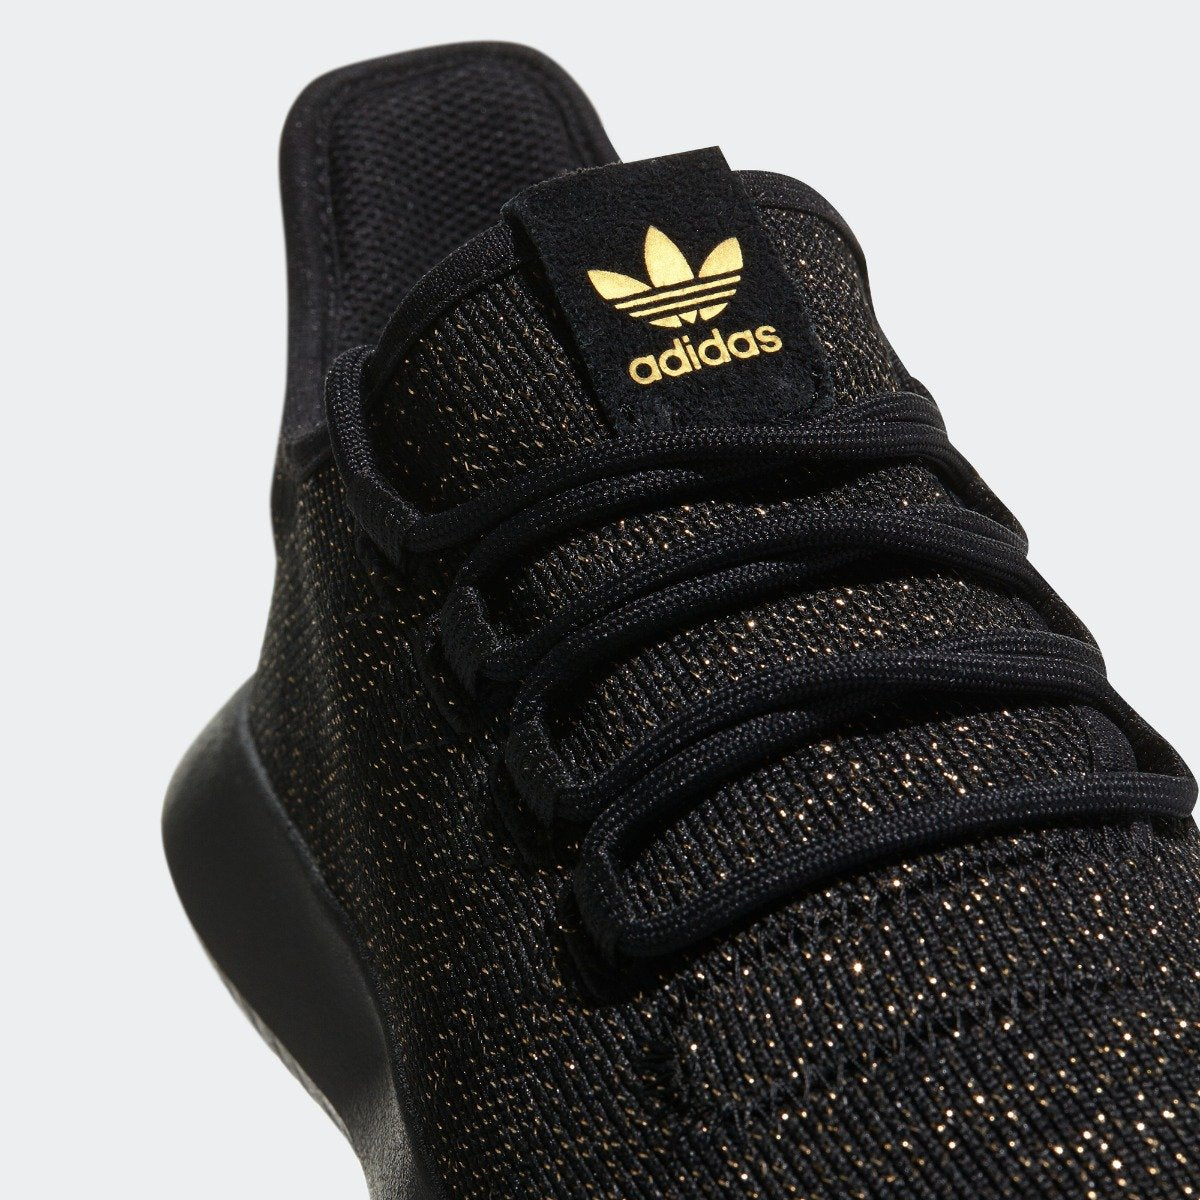 the latest c7ba3 4e5ae Kid's adidas Originals Tubular Shadow Shoes Black Gold Metallic - 10K / GOLD